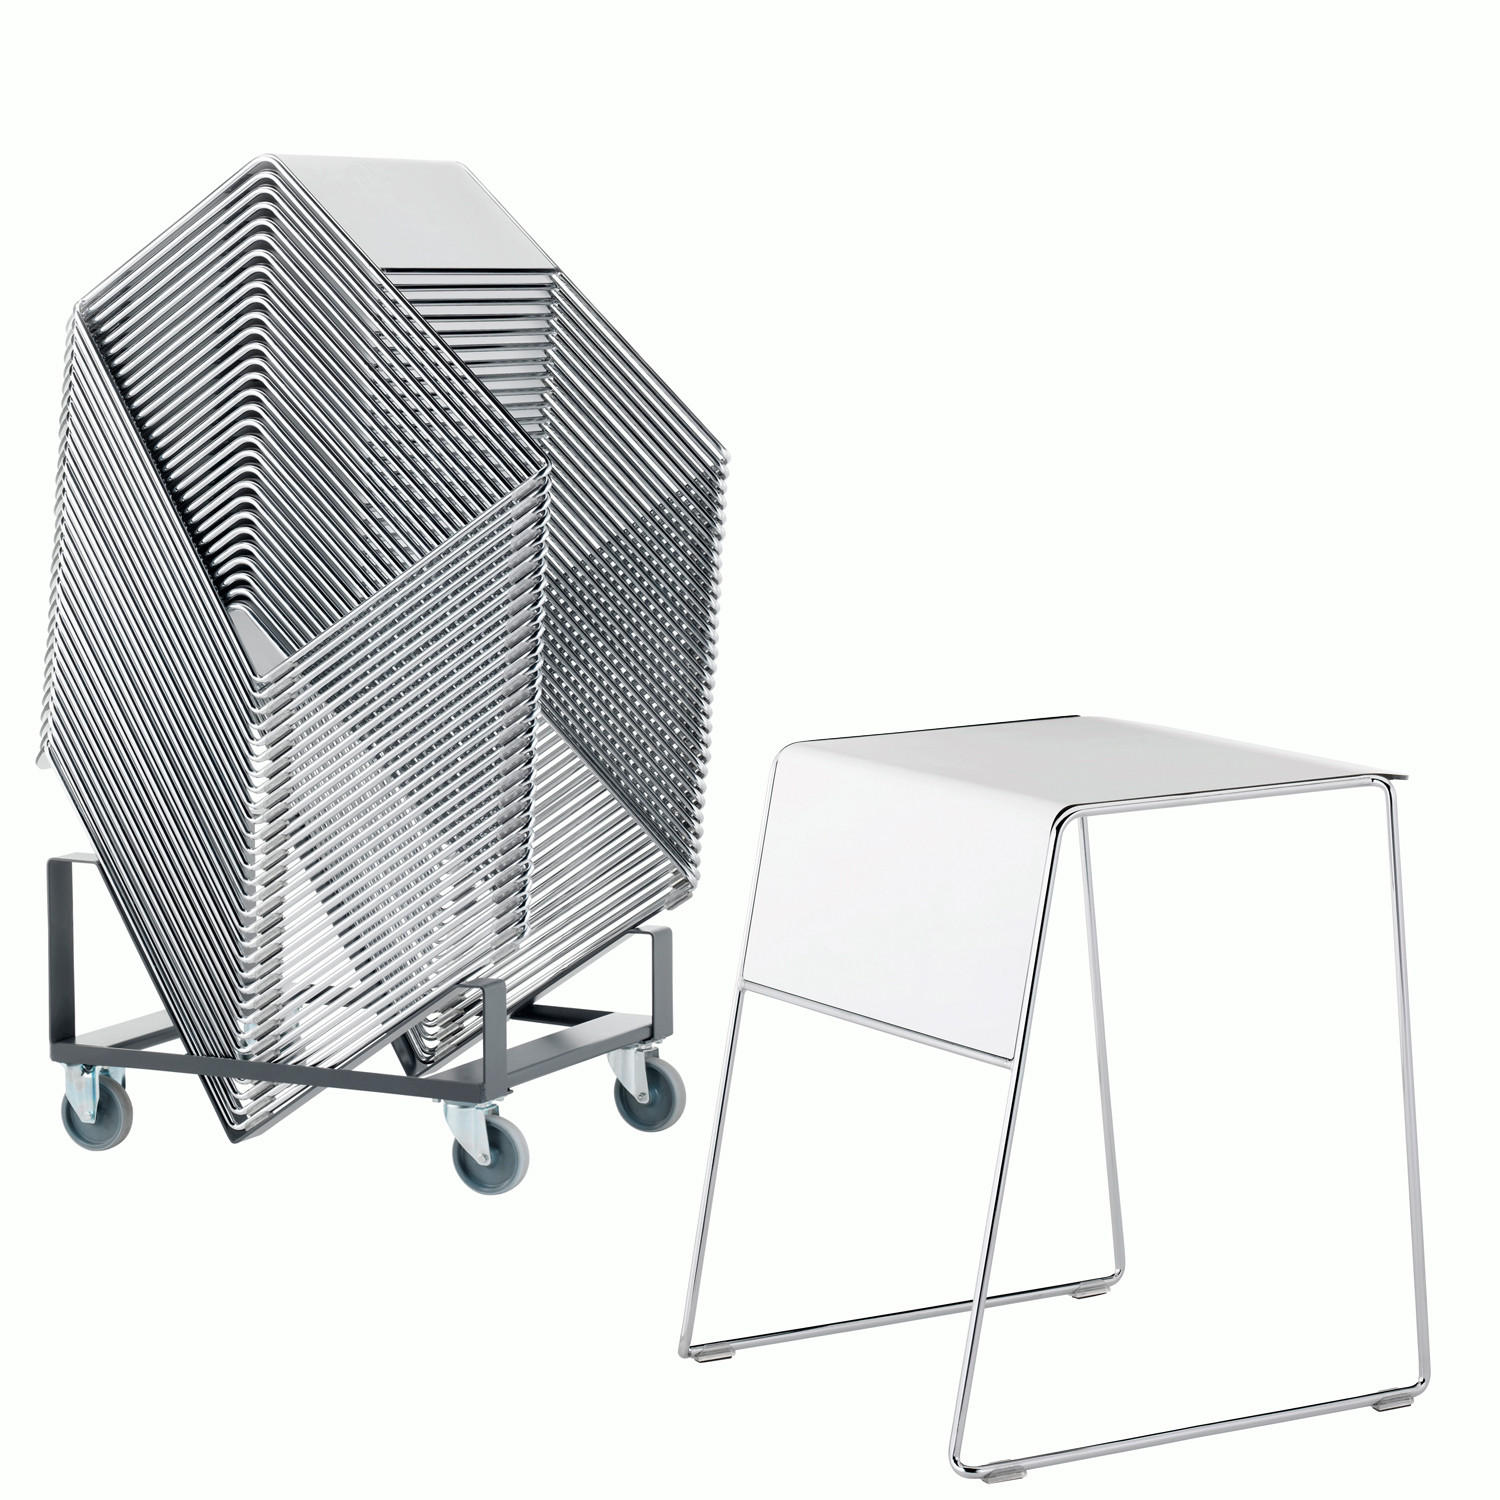 Tutor Stacking Tables + Trolley